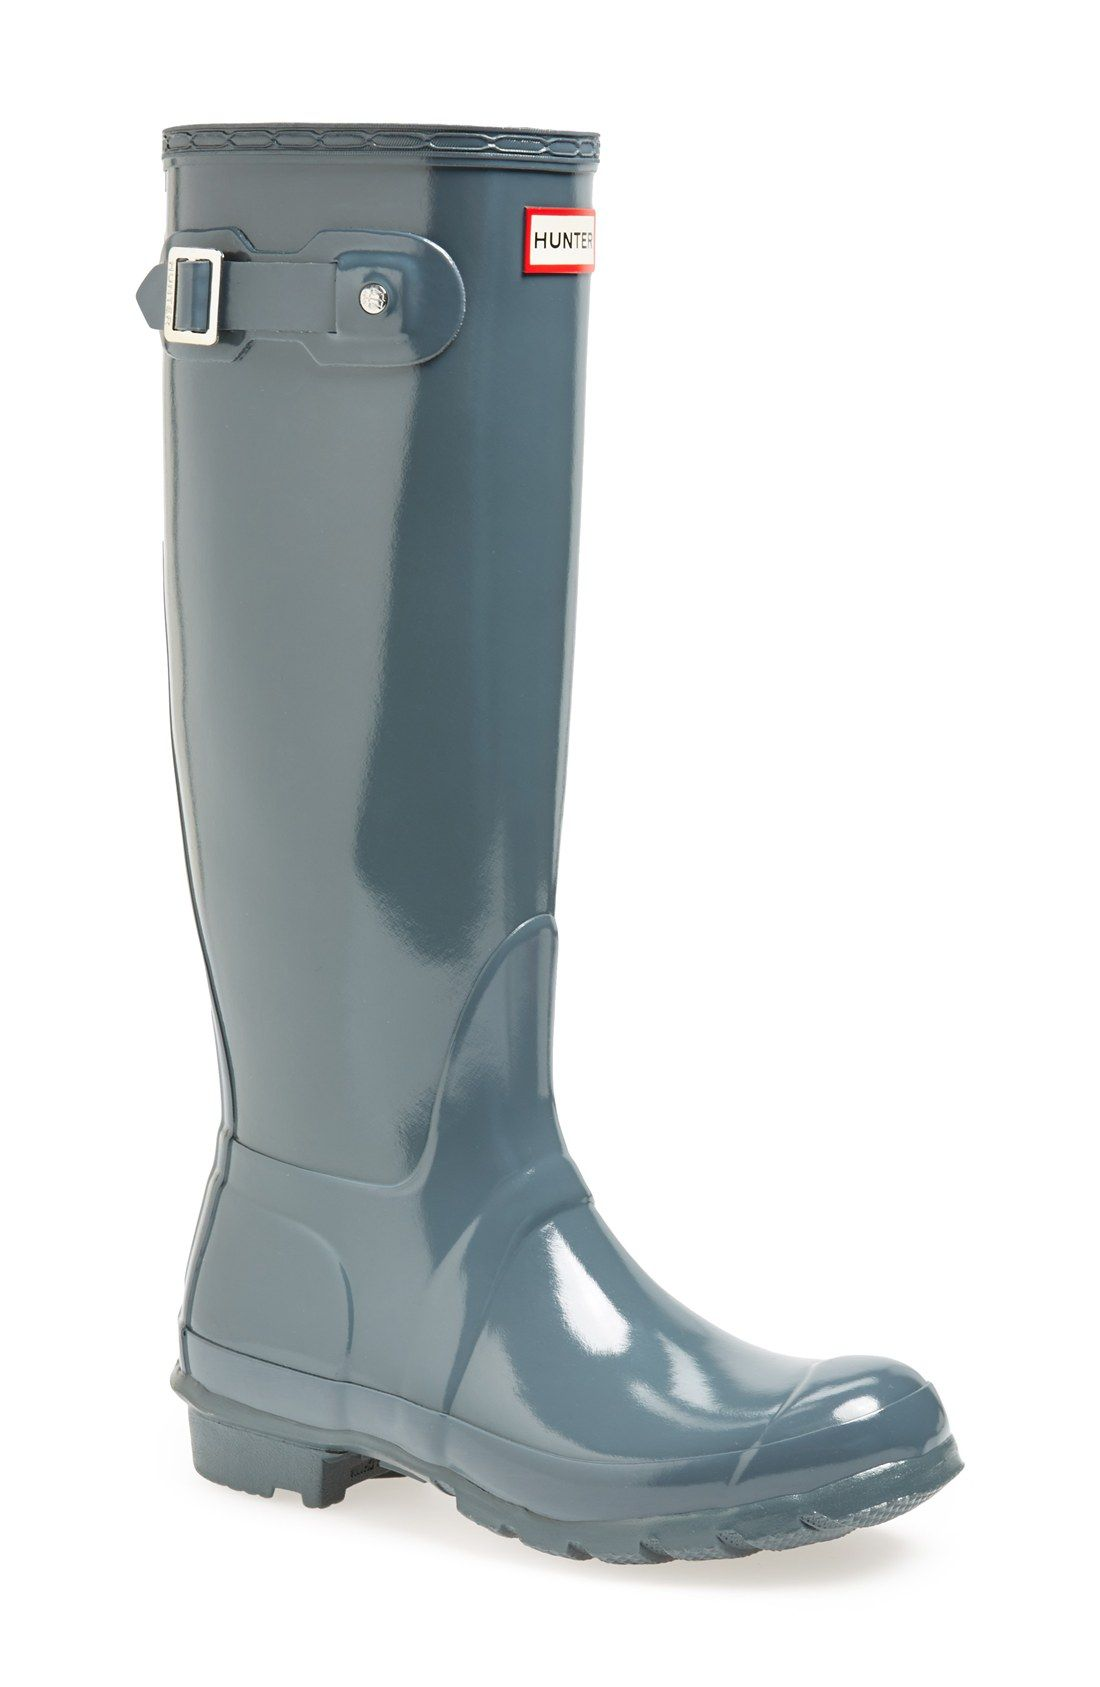 Hunter Original Tall Gloss Boots  Wellies Color Green  Women